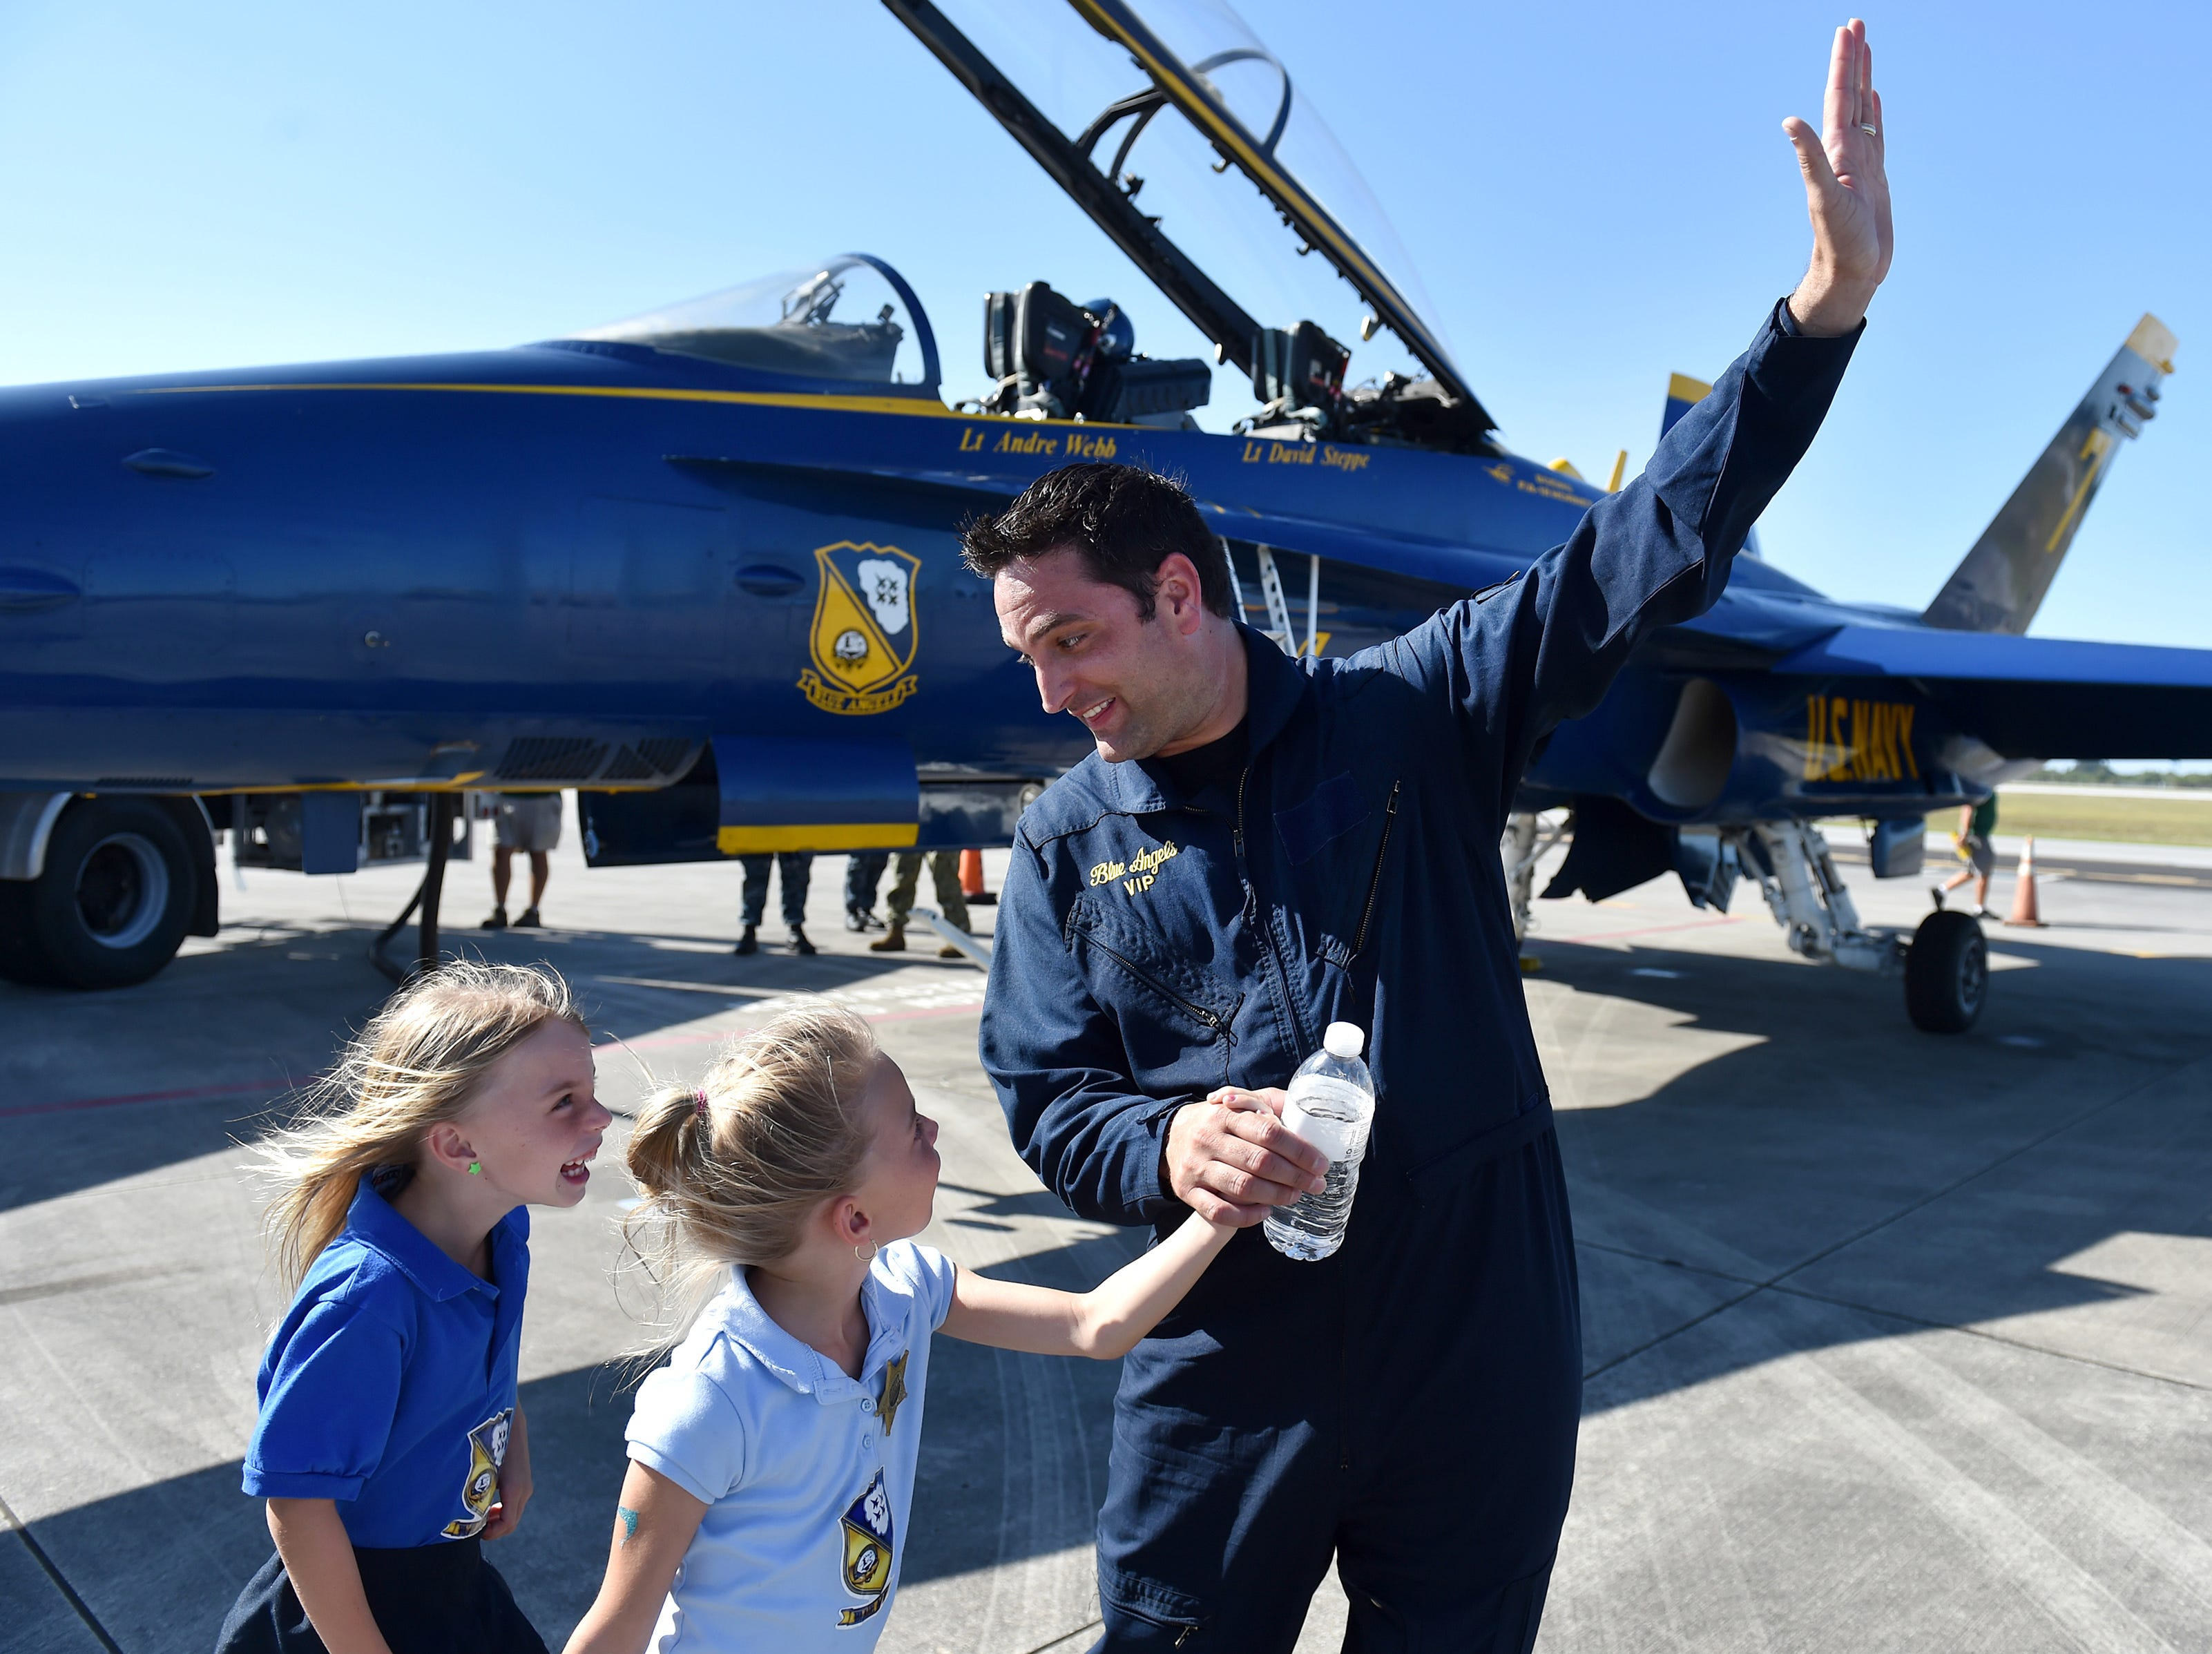 """""""Did you see the airplane when it was going up like this,"""" said TCPalm editor Adam Neal, to his twin daughters Kaley (left), and Ryley, 6, after taking a media flight in a Blue Angels F/A-18 Hornet aircraft Wednesday, April, 18, 2018, at the Vero Beach Regional Airport in Vero Beach. The Blue Angels performed at the 2018 Vero Beach Air Show that weekend."""